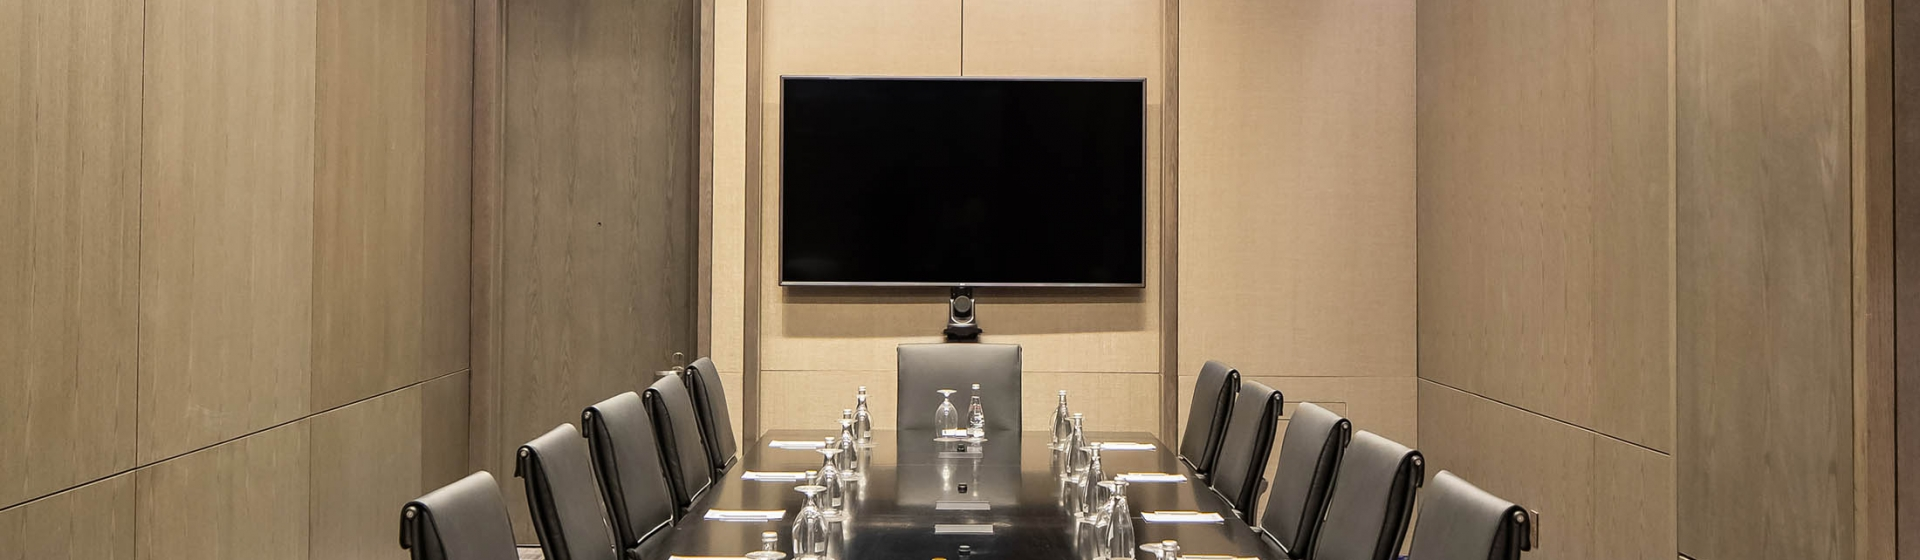 The large Century Plaza boardroom equipped with a long black table.